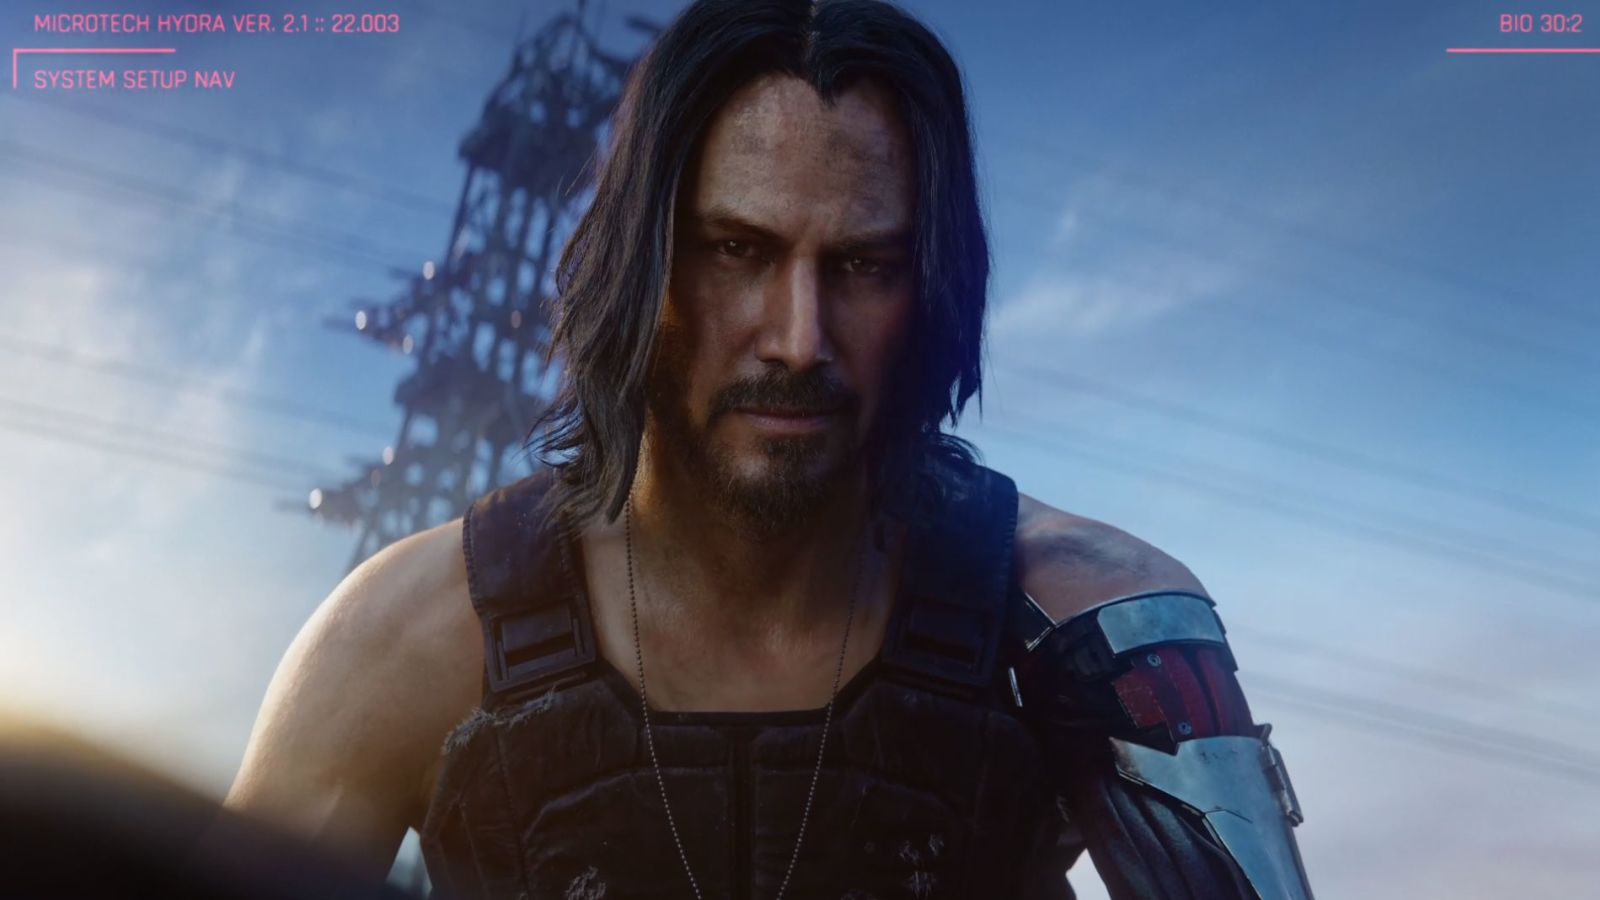 Cyberpunk 2077 release date trailer revealed and feature Keanu Reeves